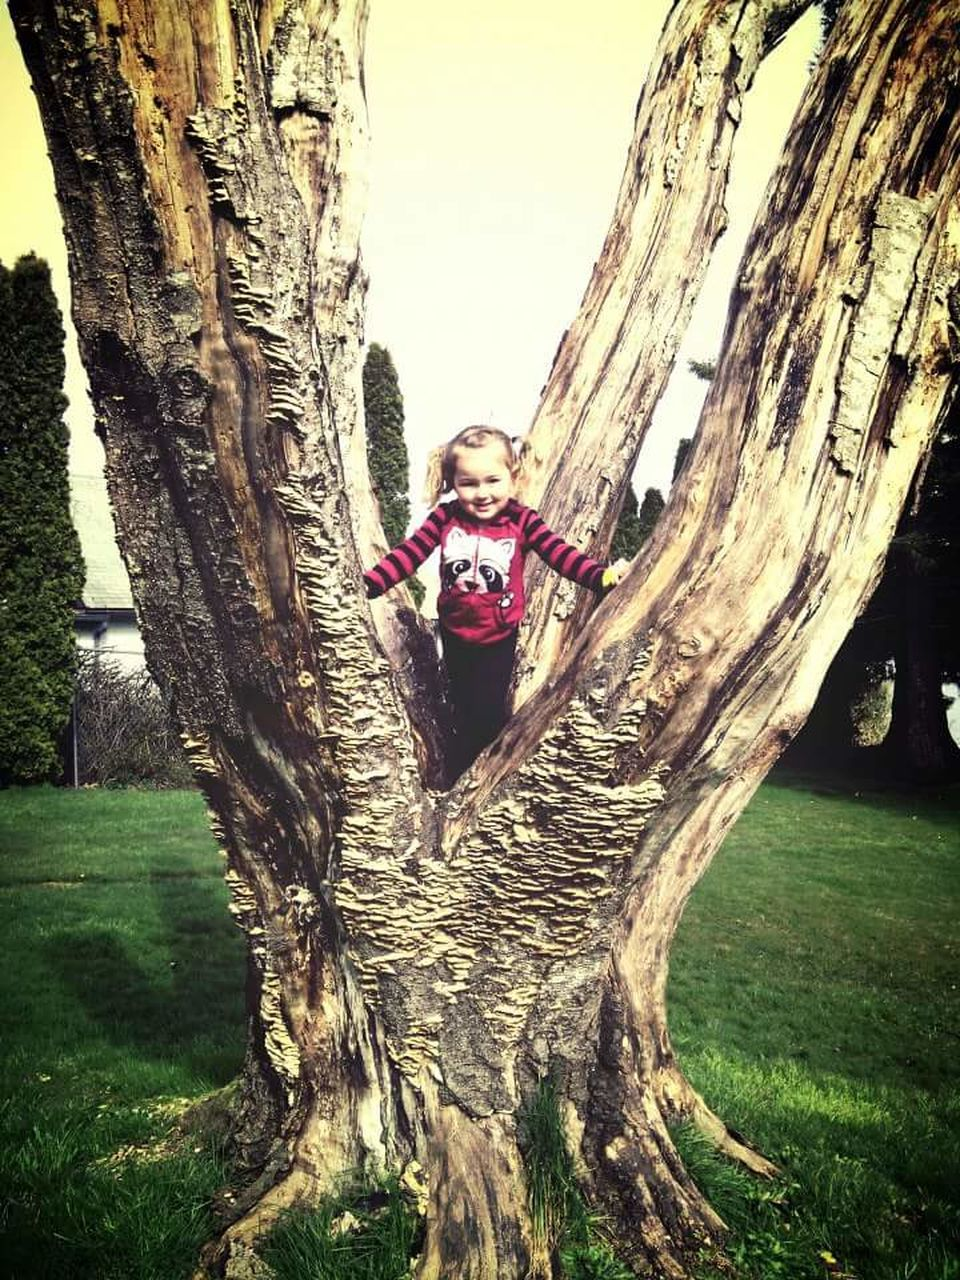 tree trunk, tree, leisure activity, real people, lifestyles, happiness, one person, full length, front view, smiling, looking at camera, casual clothing, hugging, day, childhood, young adult, nature, portrait, growth, young women, outdoors, rope swing, beauty in nature